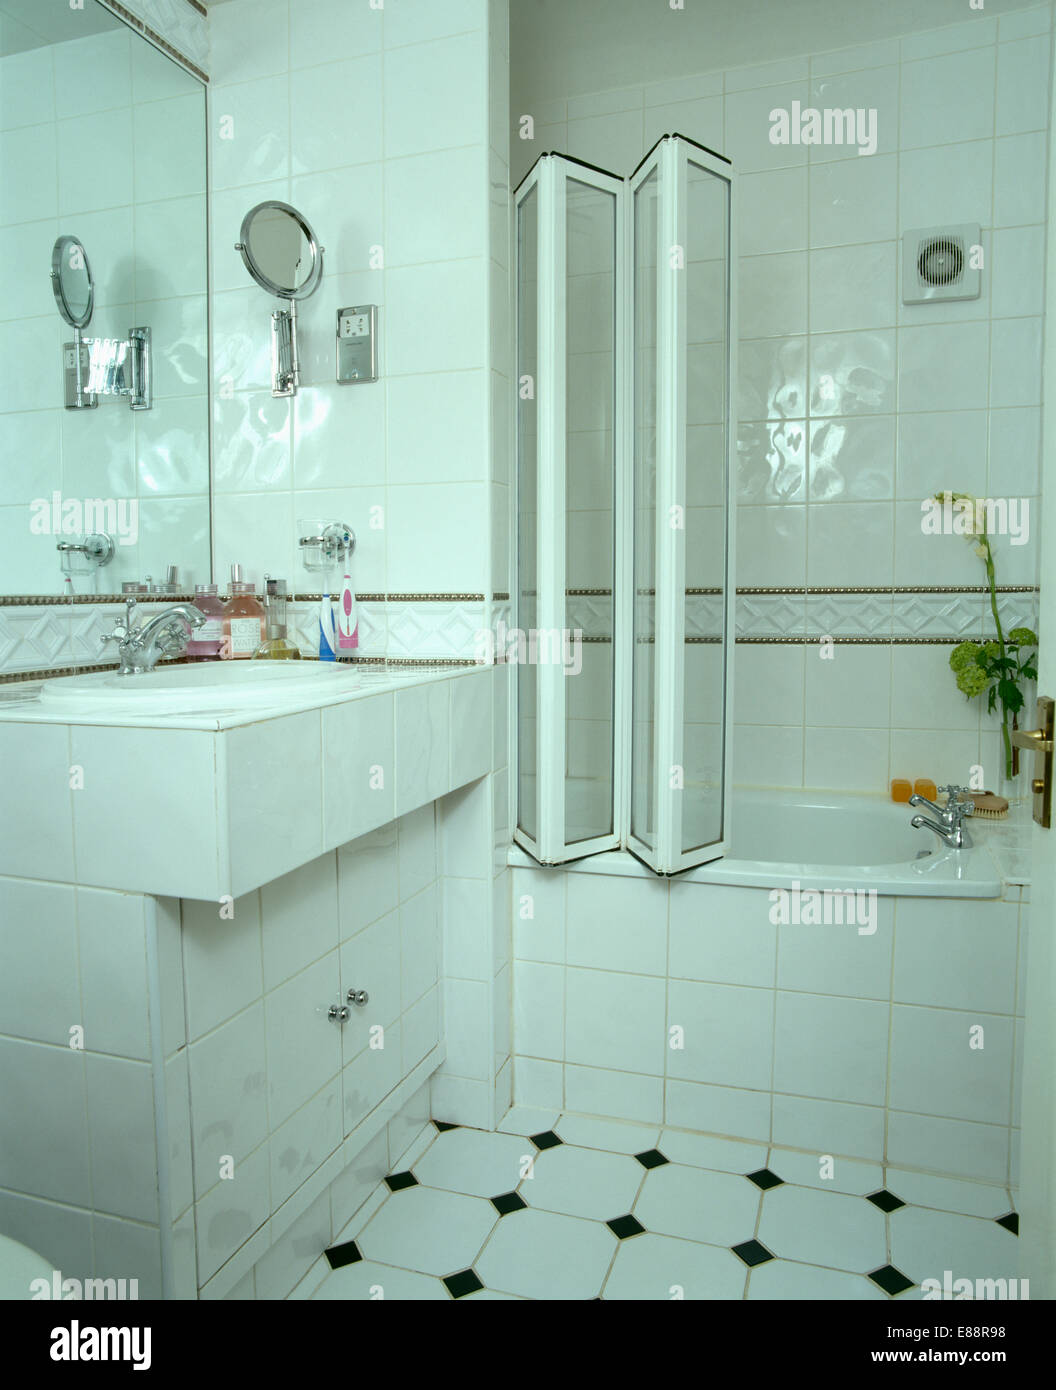 Folding glass shower doors on bath in modern white tiled bathroom ...